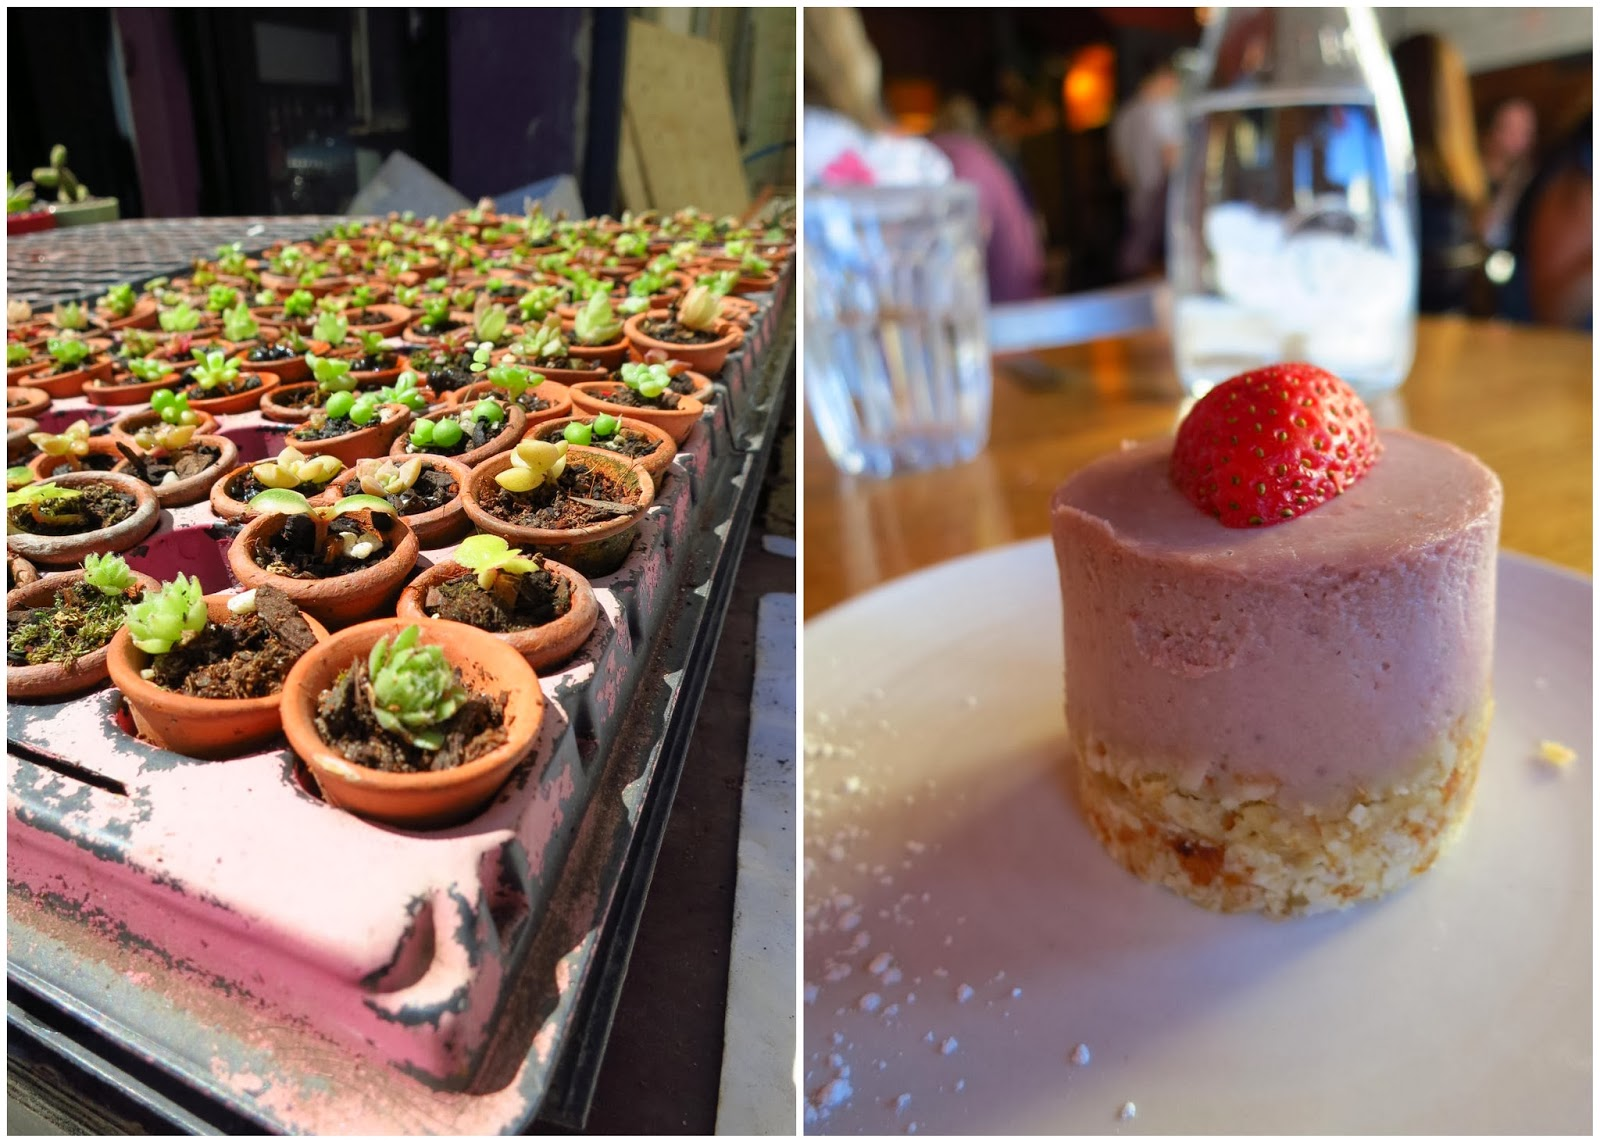 Another raw treat (pictured right) is the strawberry basil cake (Vegie Bar)